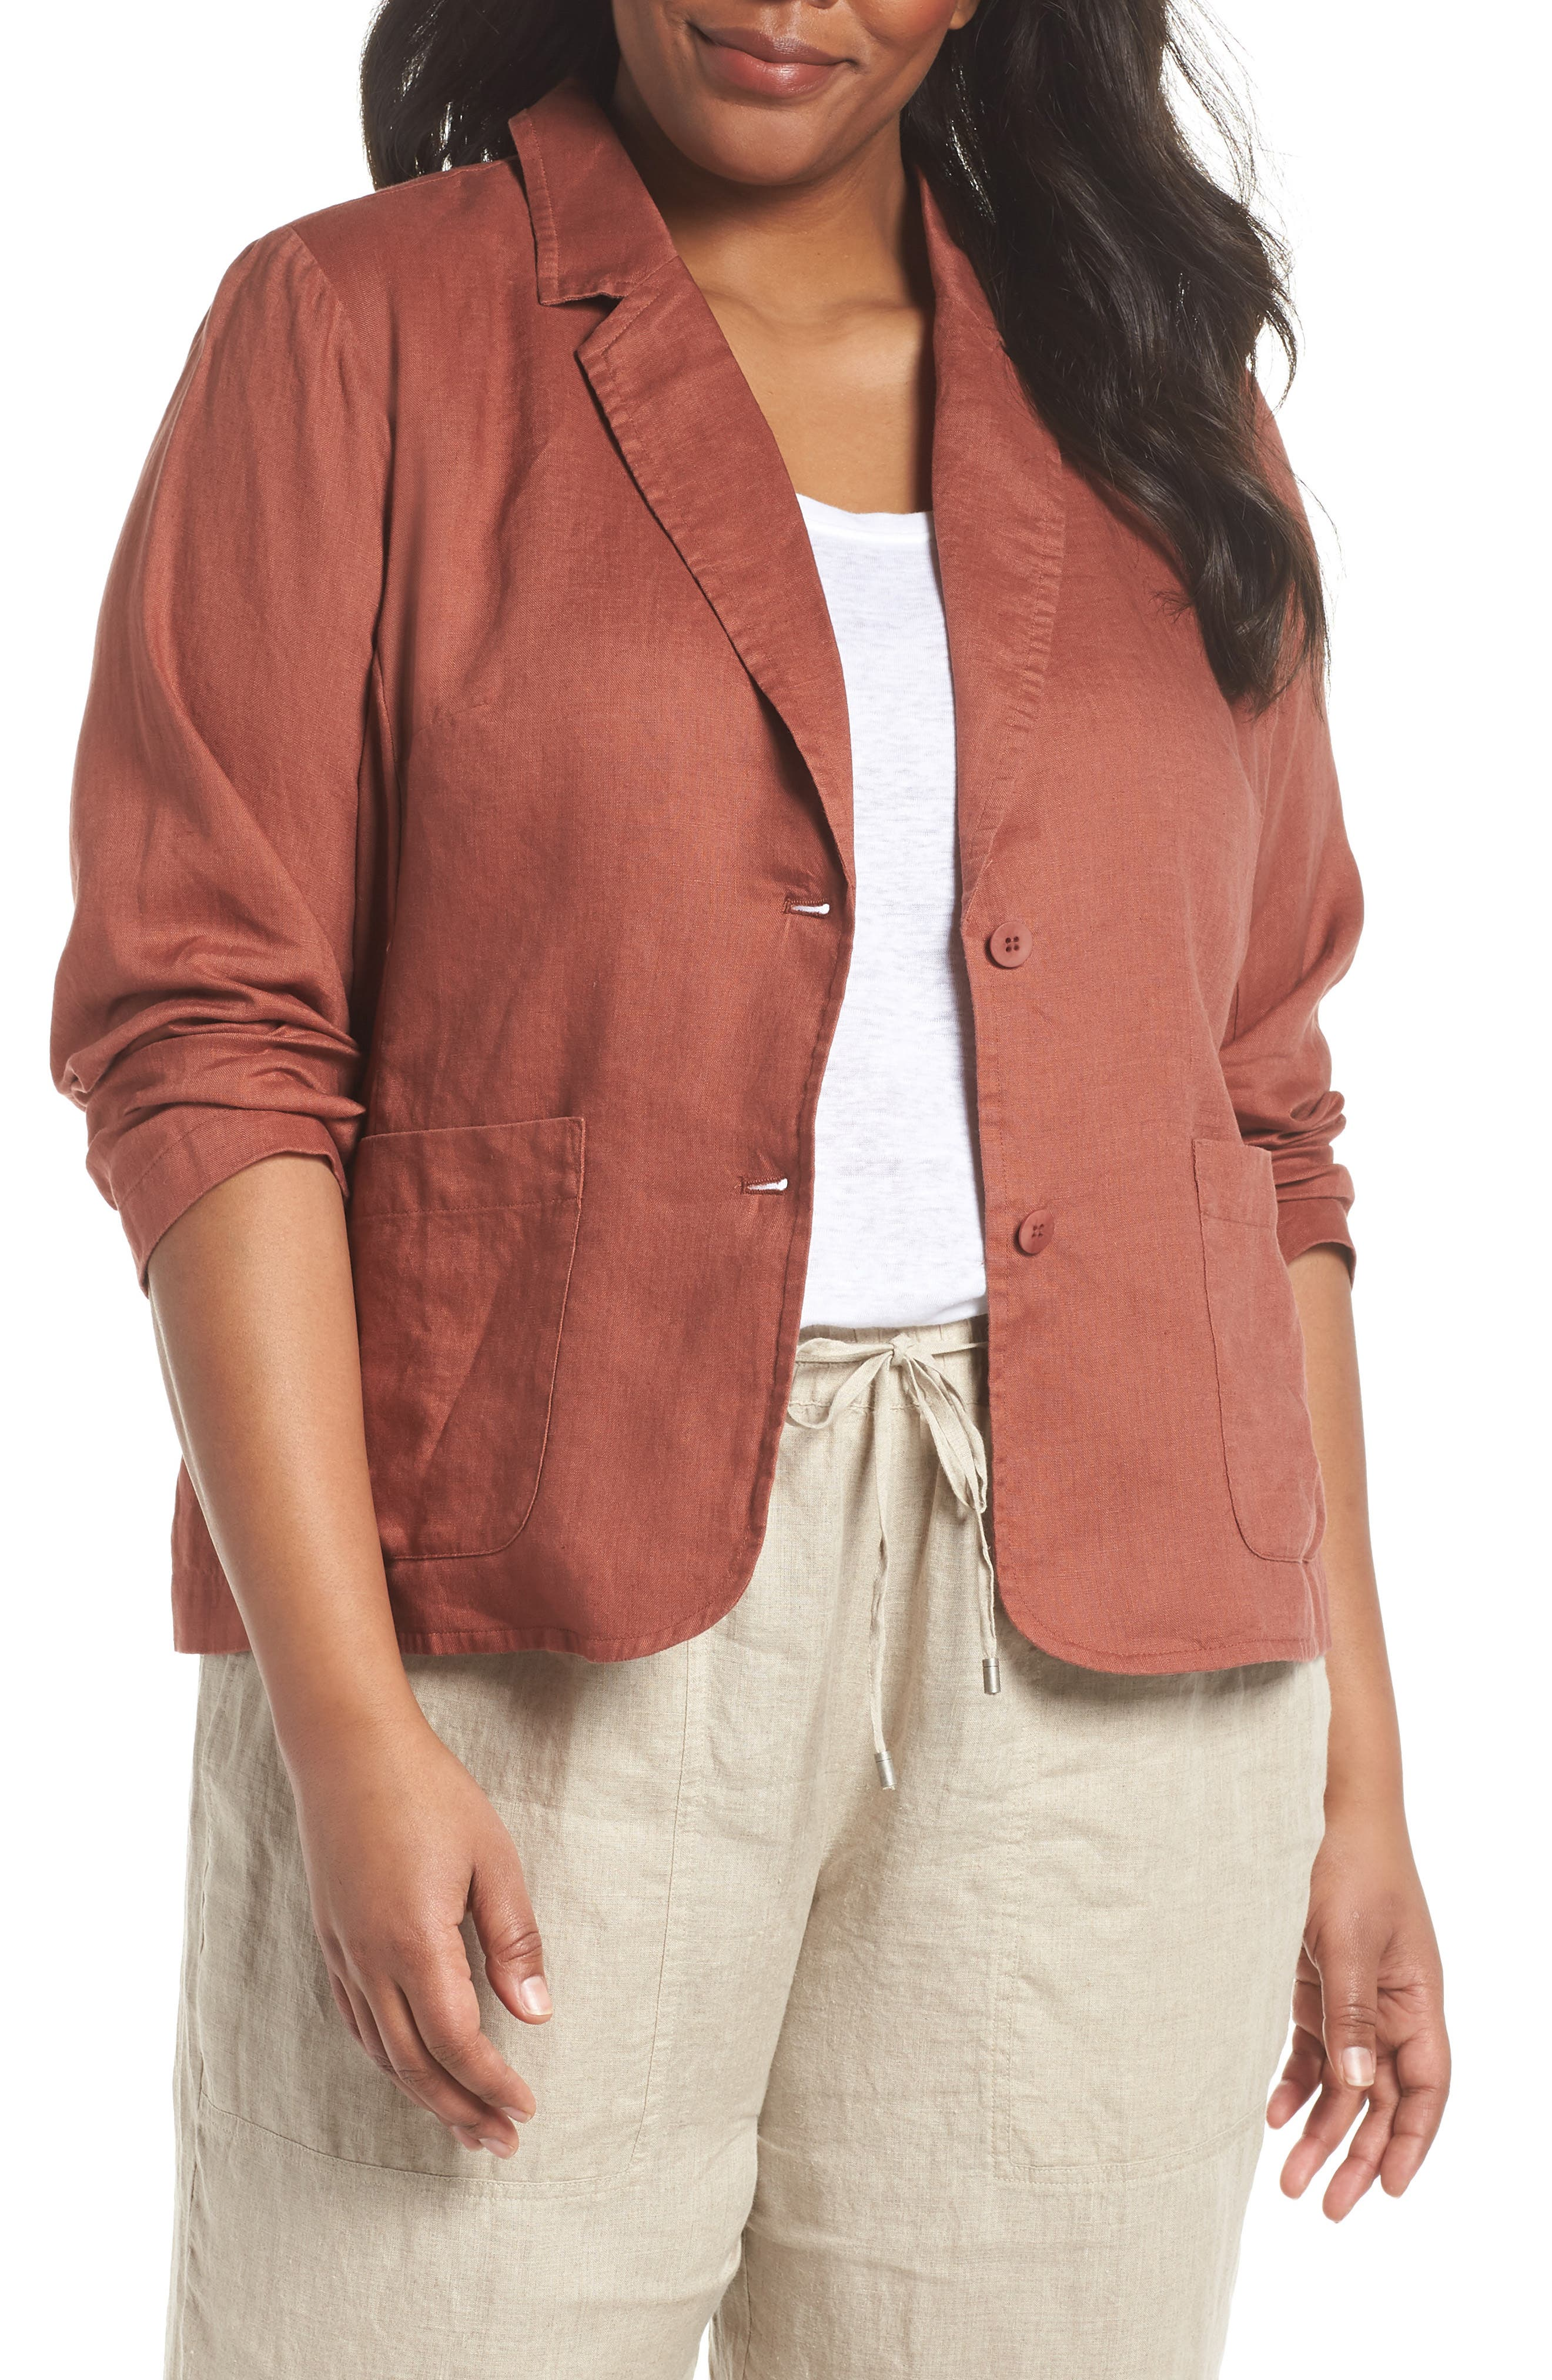 Alternate Image 1 Selected - Eileen Fisher Organic Linen Blazer (Plus Size)